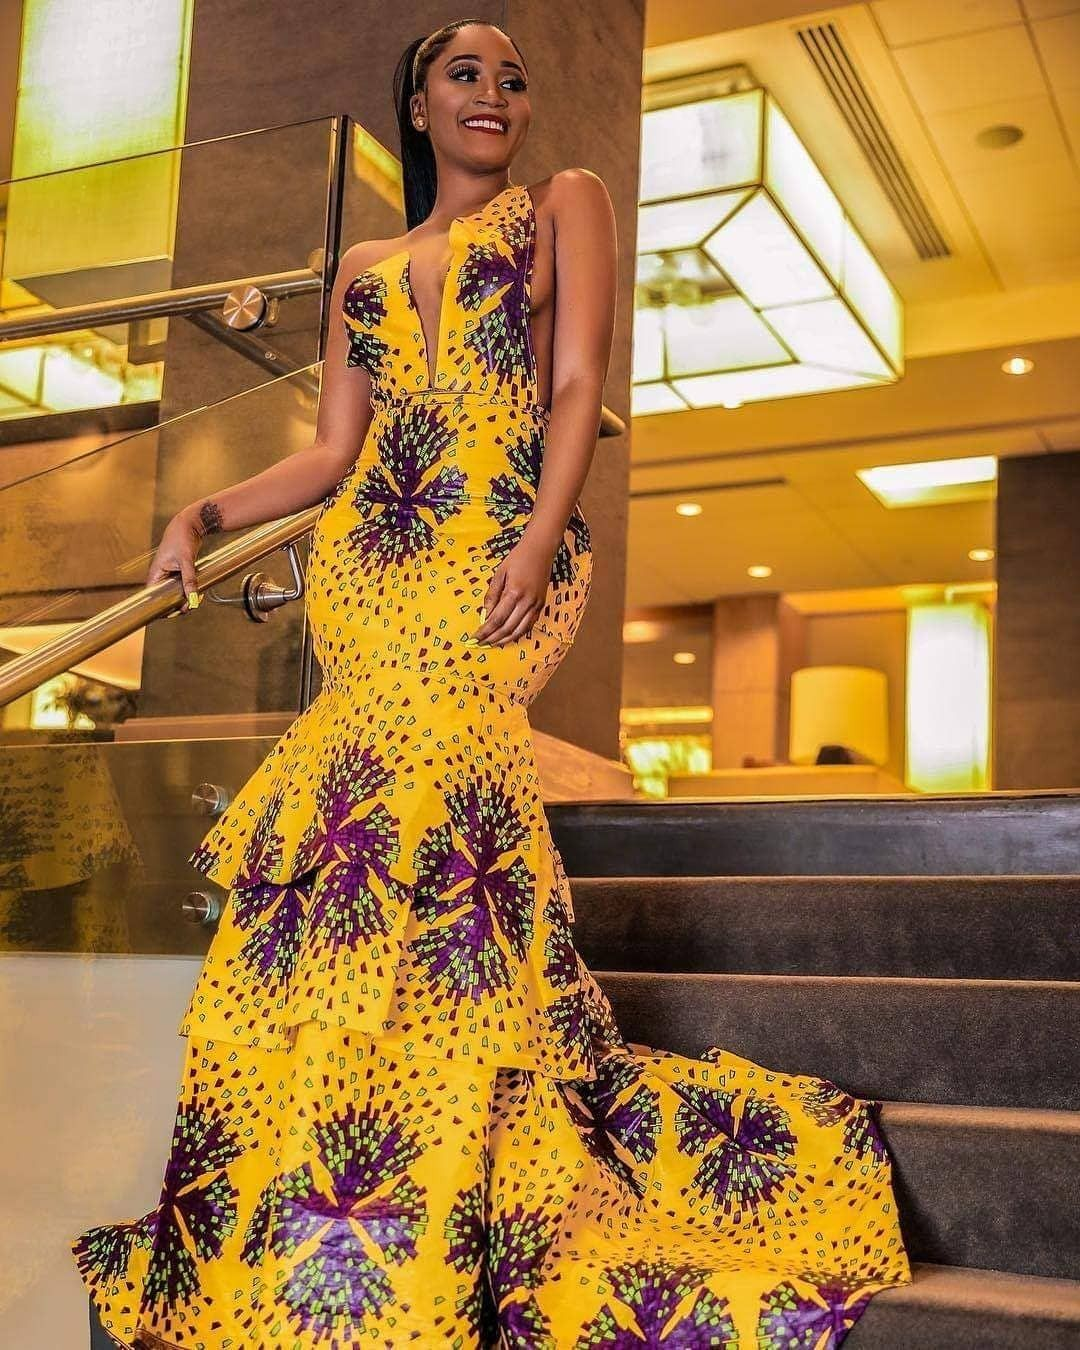 78272fdb6771 Beautiful African Print Fashion dresses for women #wedding #Africanprint  #mensfashion #Cameroon #nigeria #Fashion #Agbada #mensstyle #africanfashion  #Asoebi ...